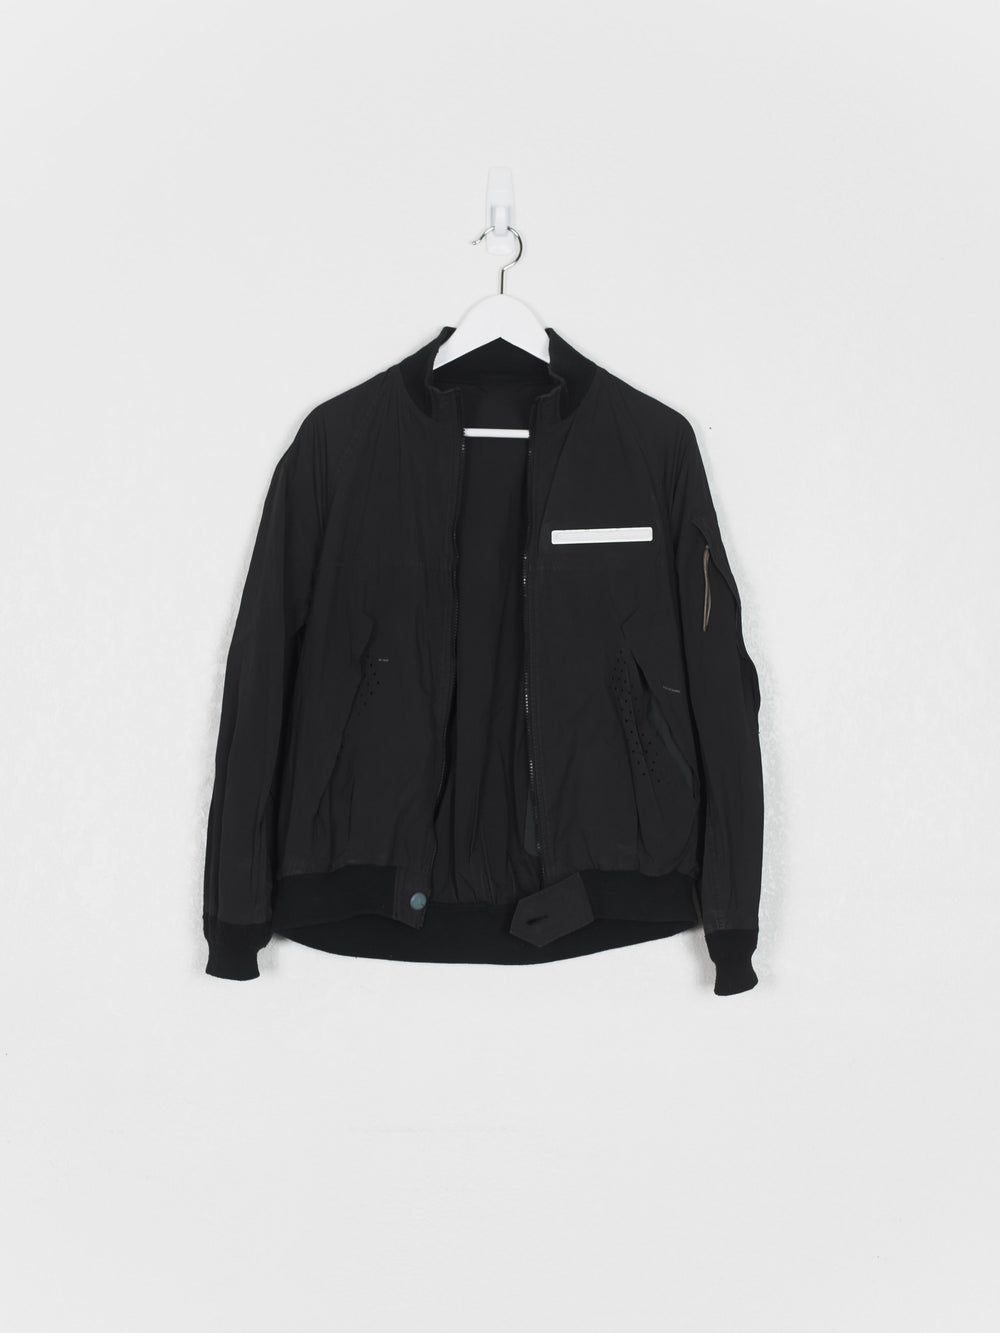 Undercover SS10 Less But Better Bomber